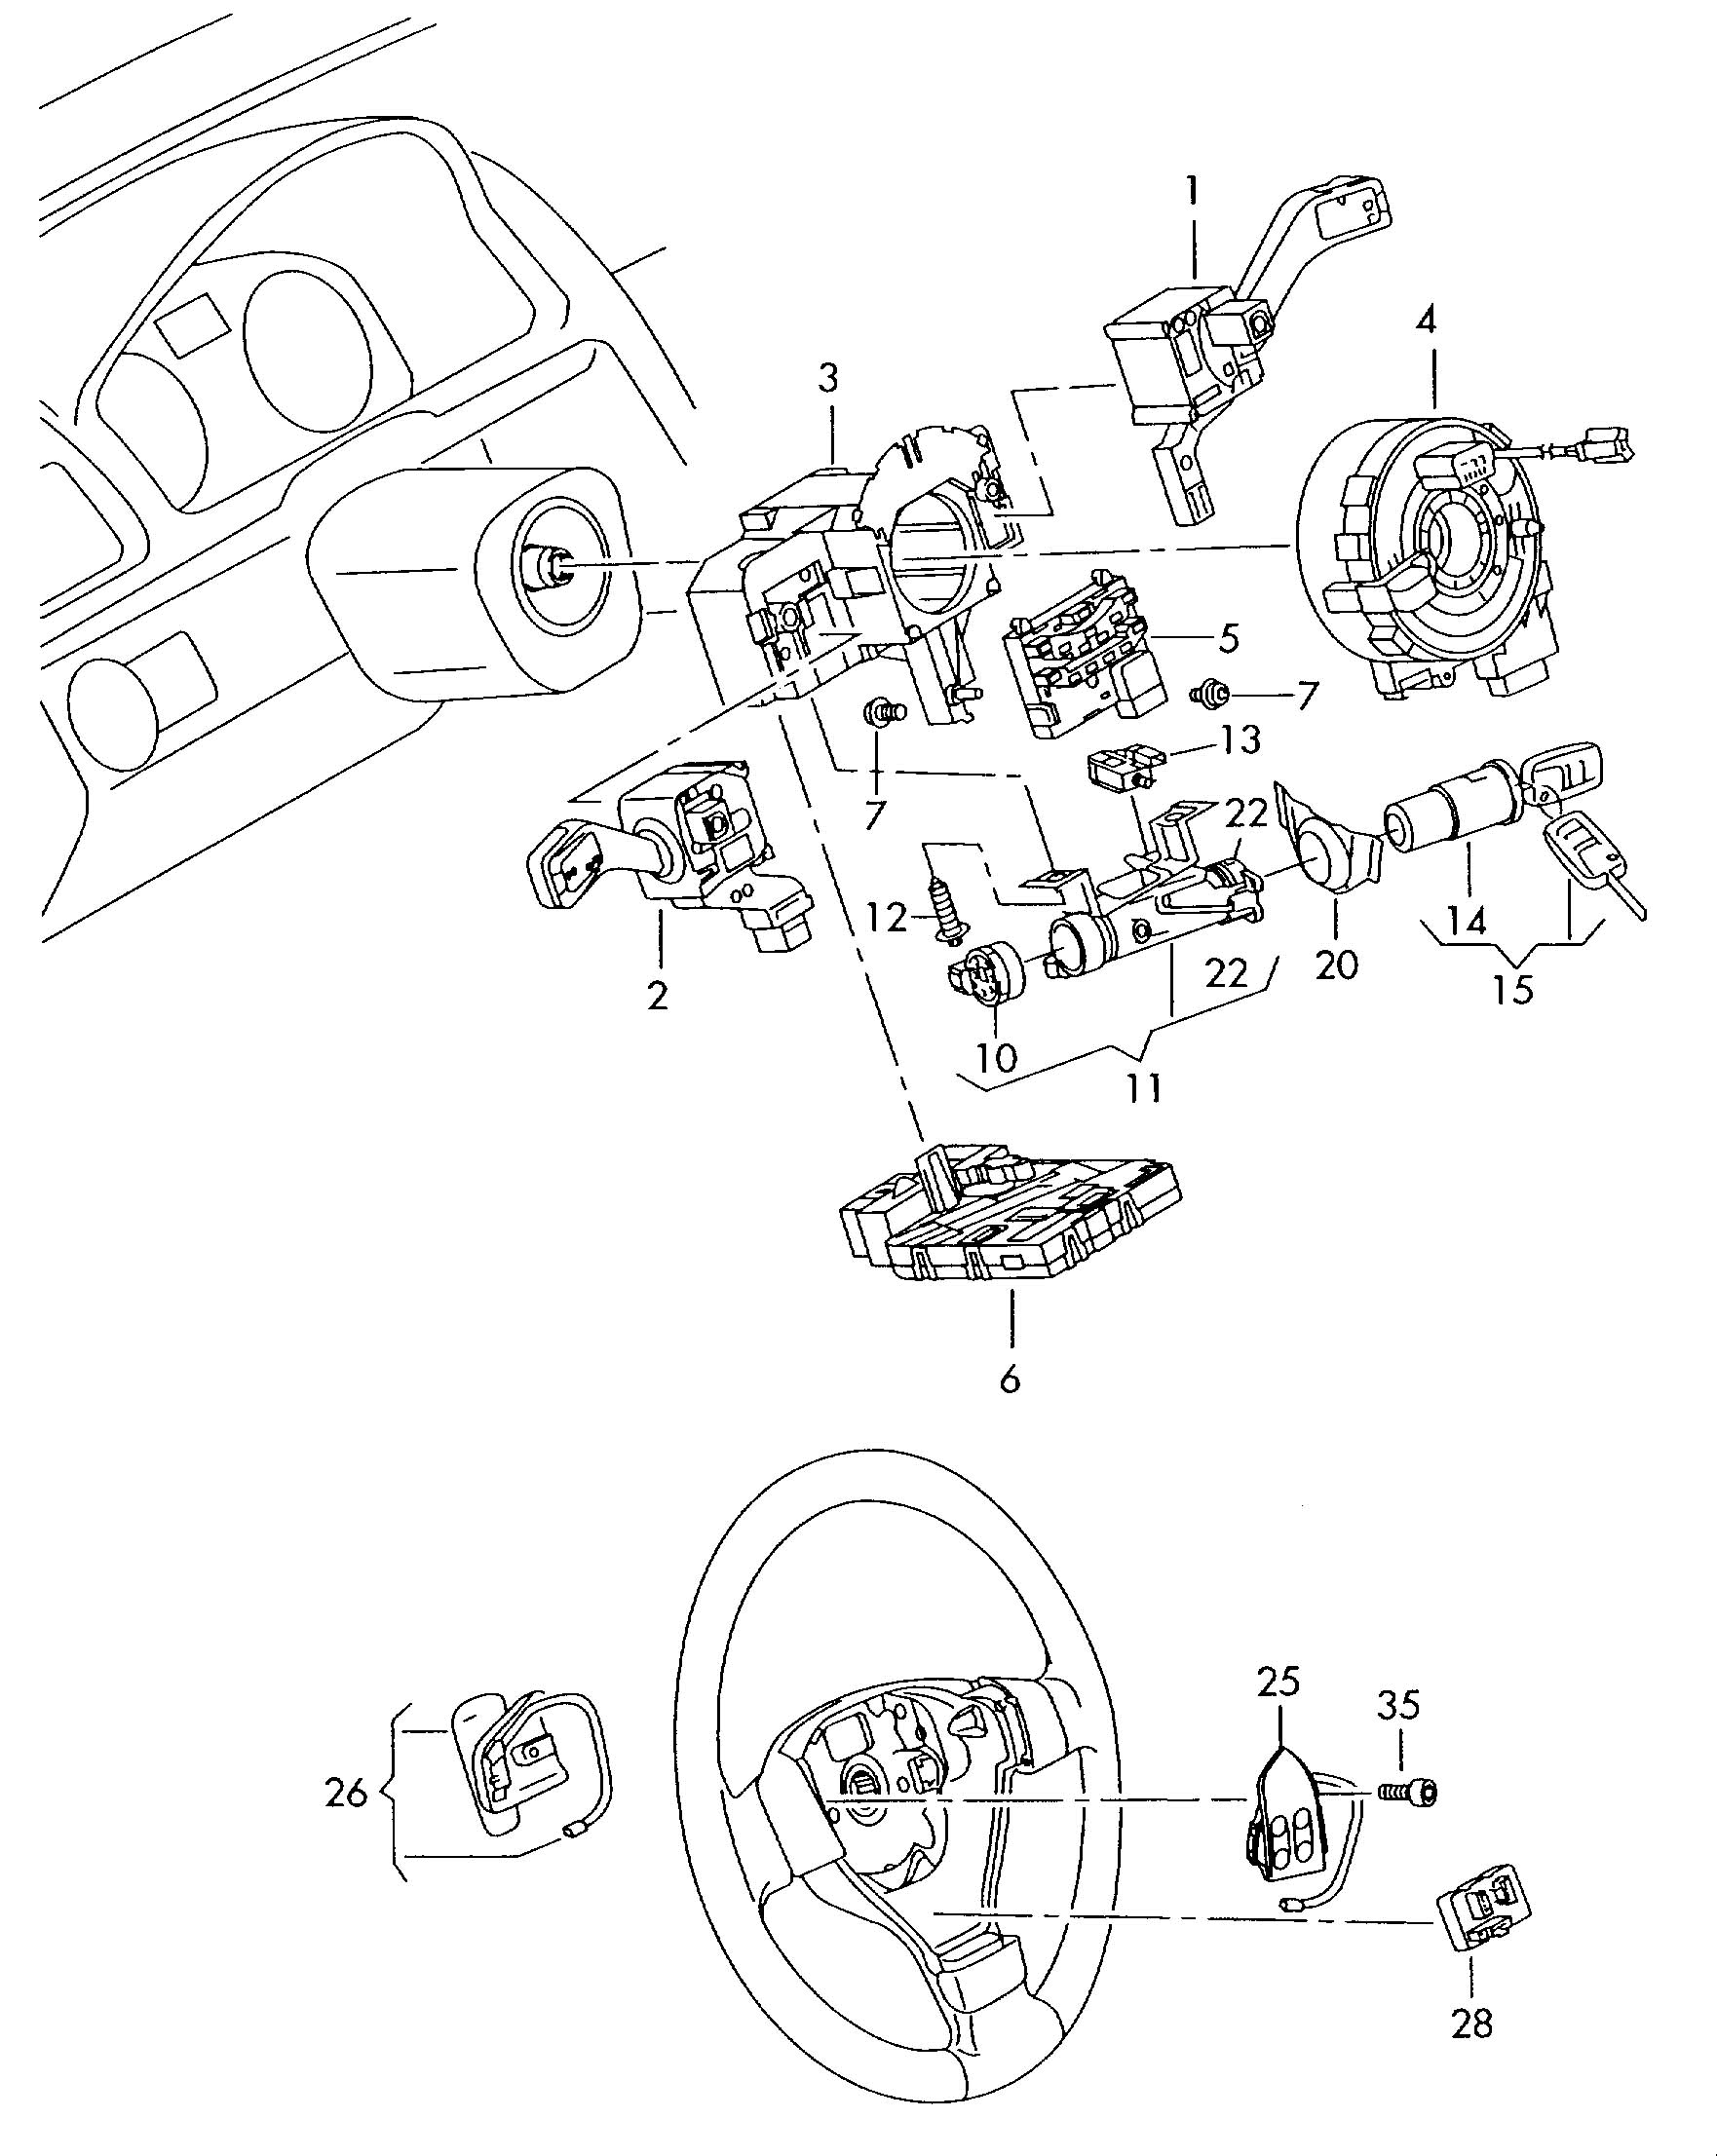 2008 volkswagen tiguan steering column lock with ignition switch and adapter wiring harness